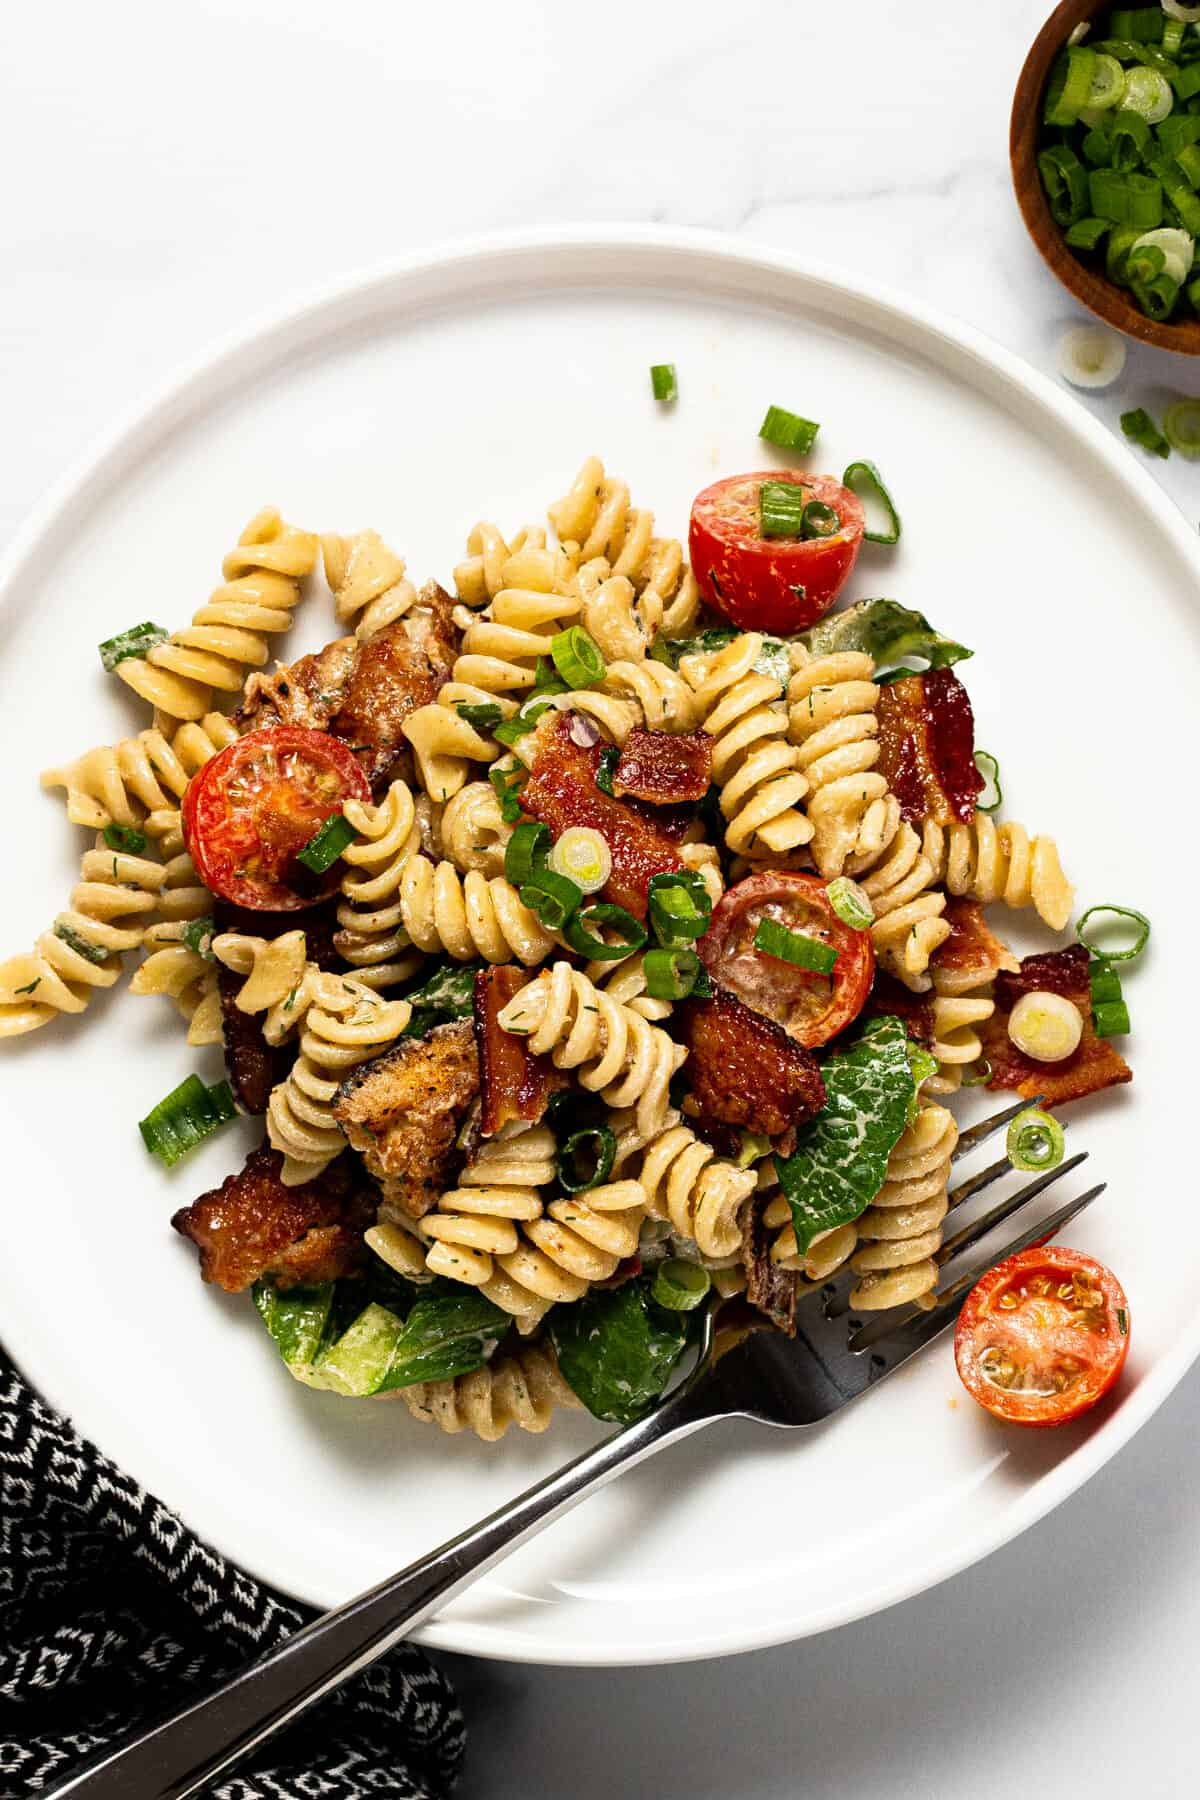 Large white plate filled with BLT pasta salad garnished with green onion